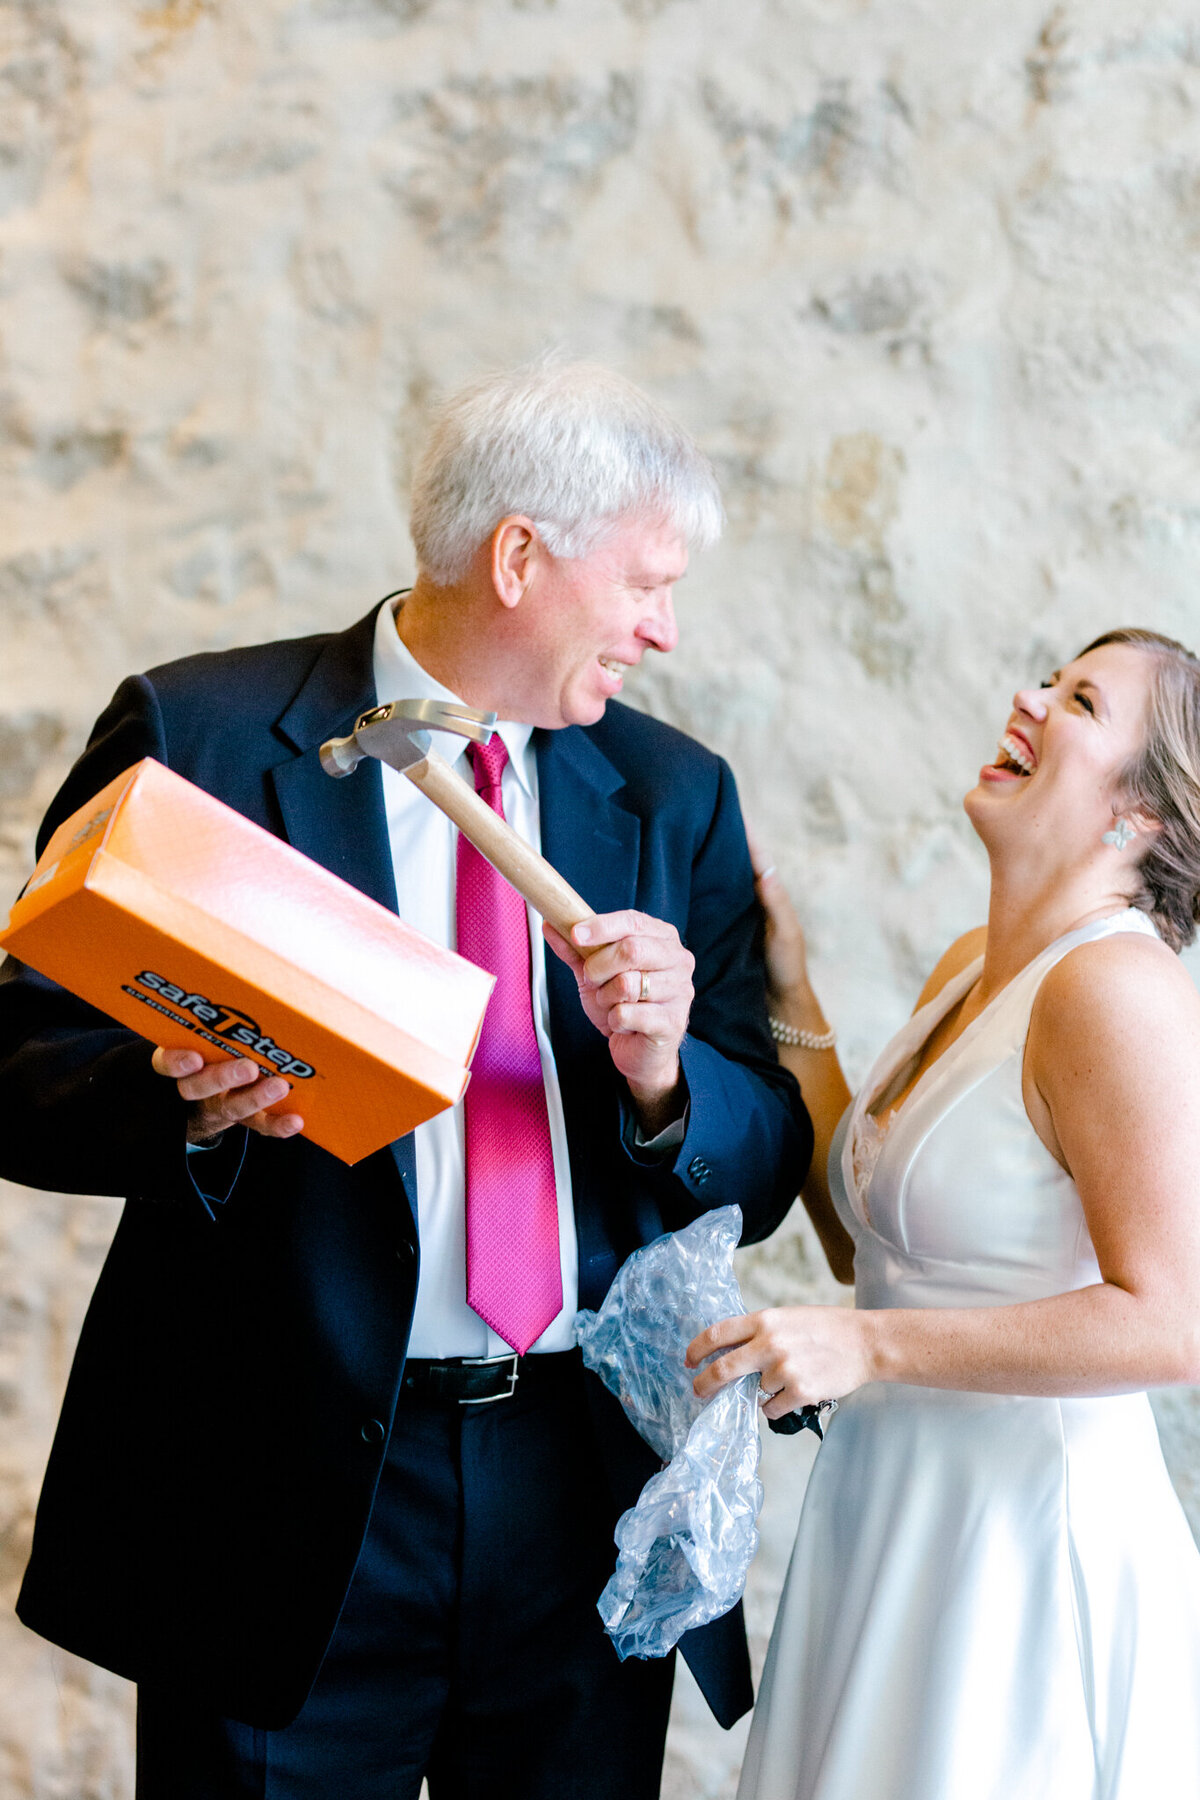 Kaylee & Michael's Wedding at Watermark Community Church | Dallas Wedding Photographer | Sami Kathryn Photography-34